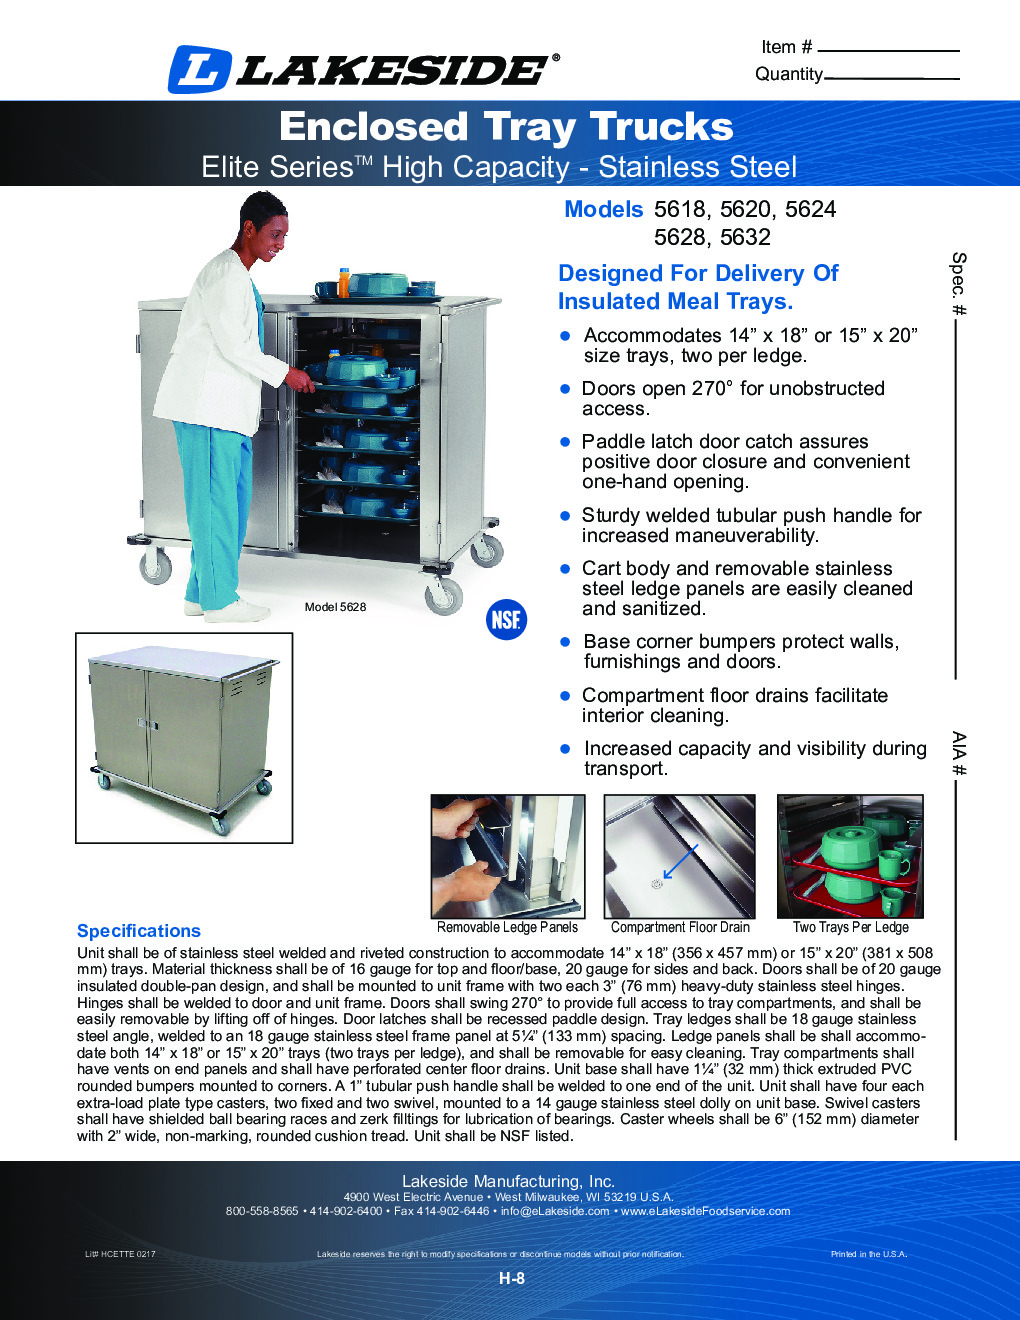 Lakeside 5624 Meal Tray Delivery Cabinet